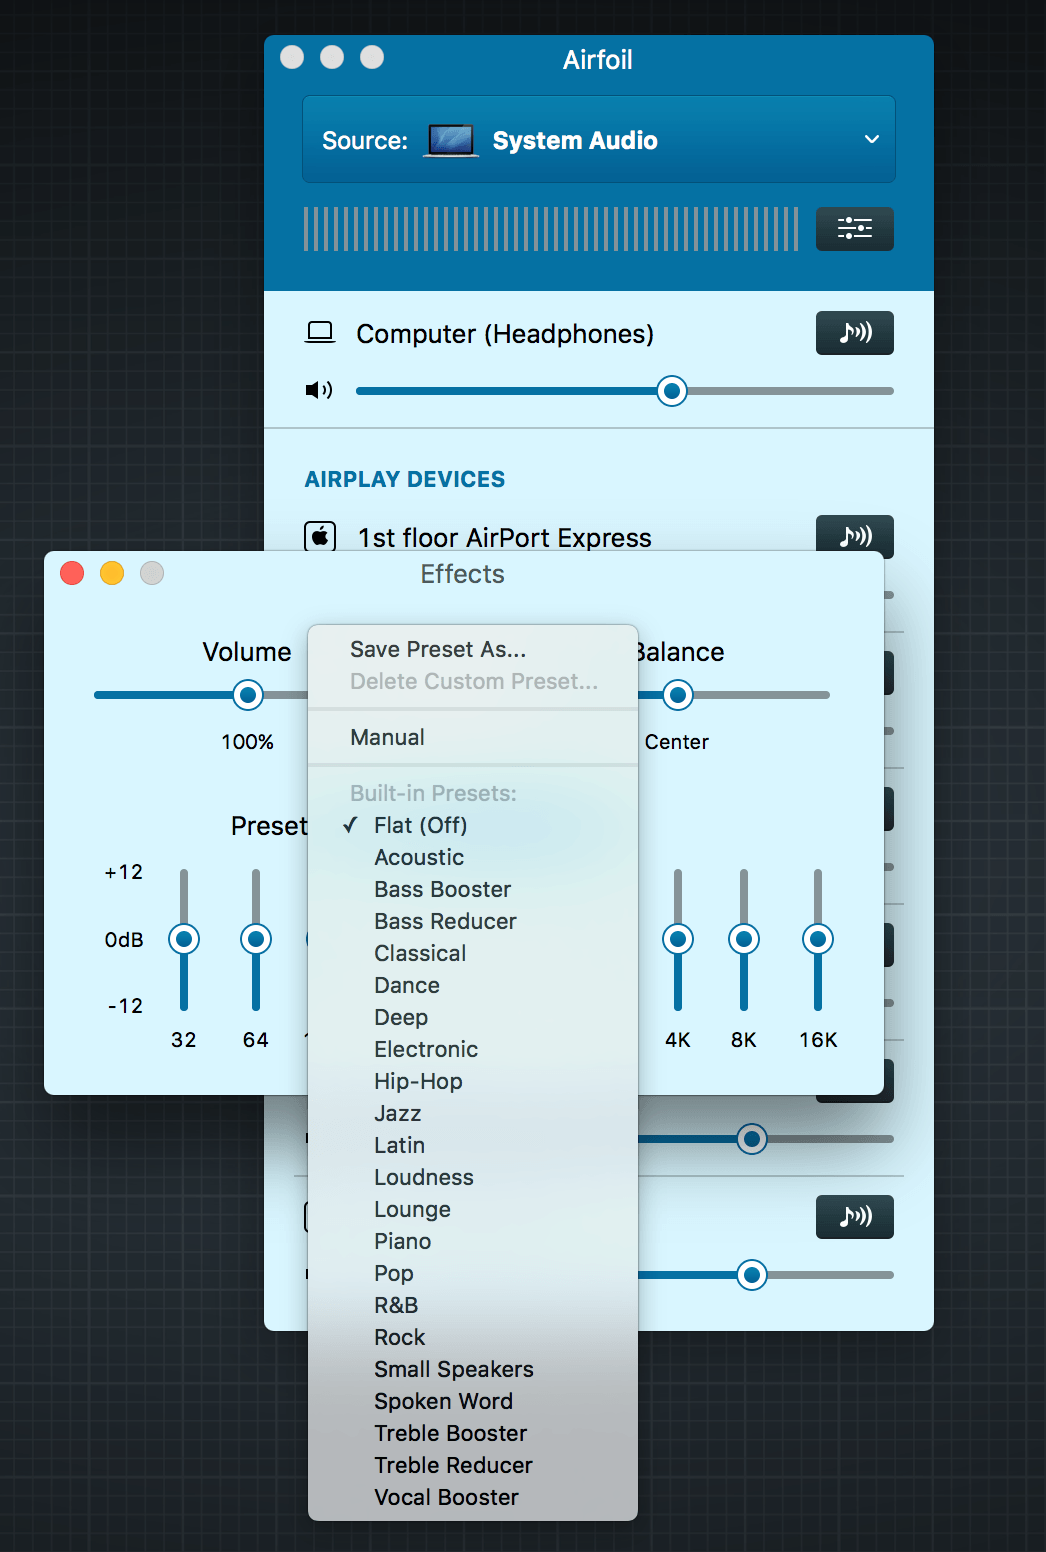 Airfoil has twenty-one equalizer presets.